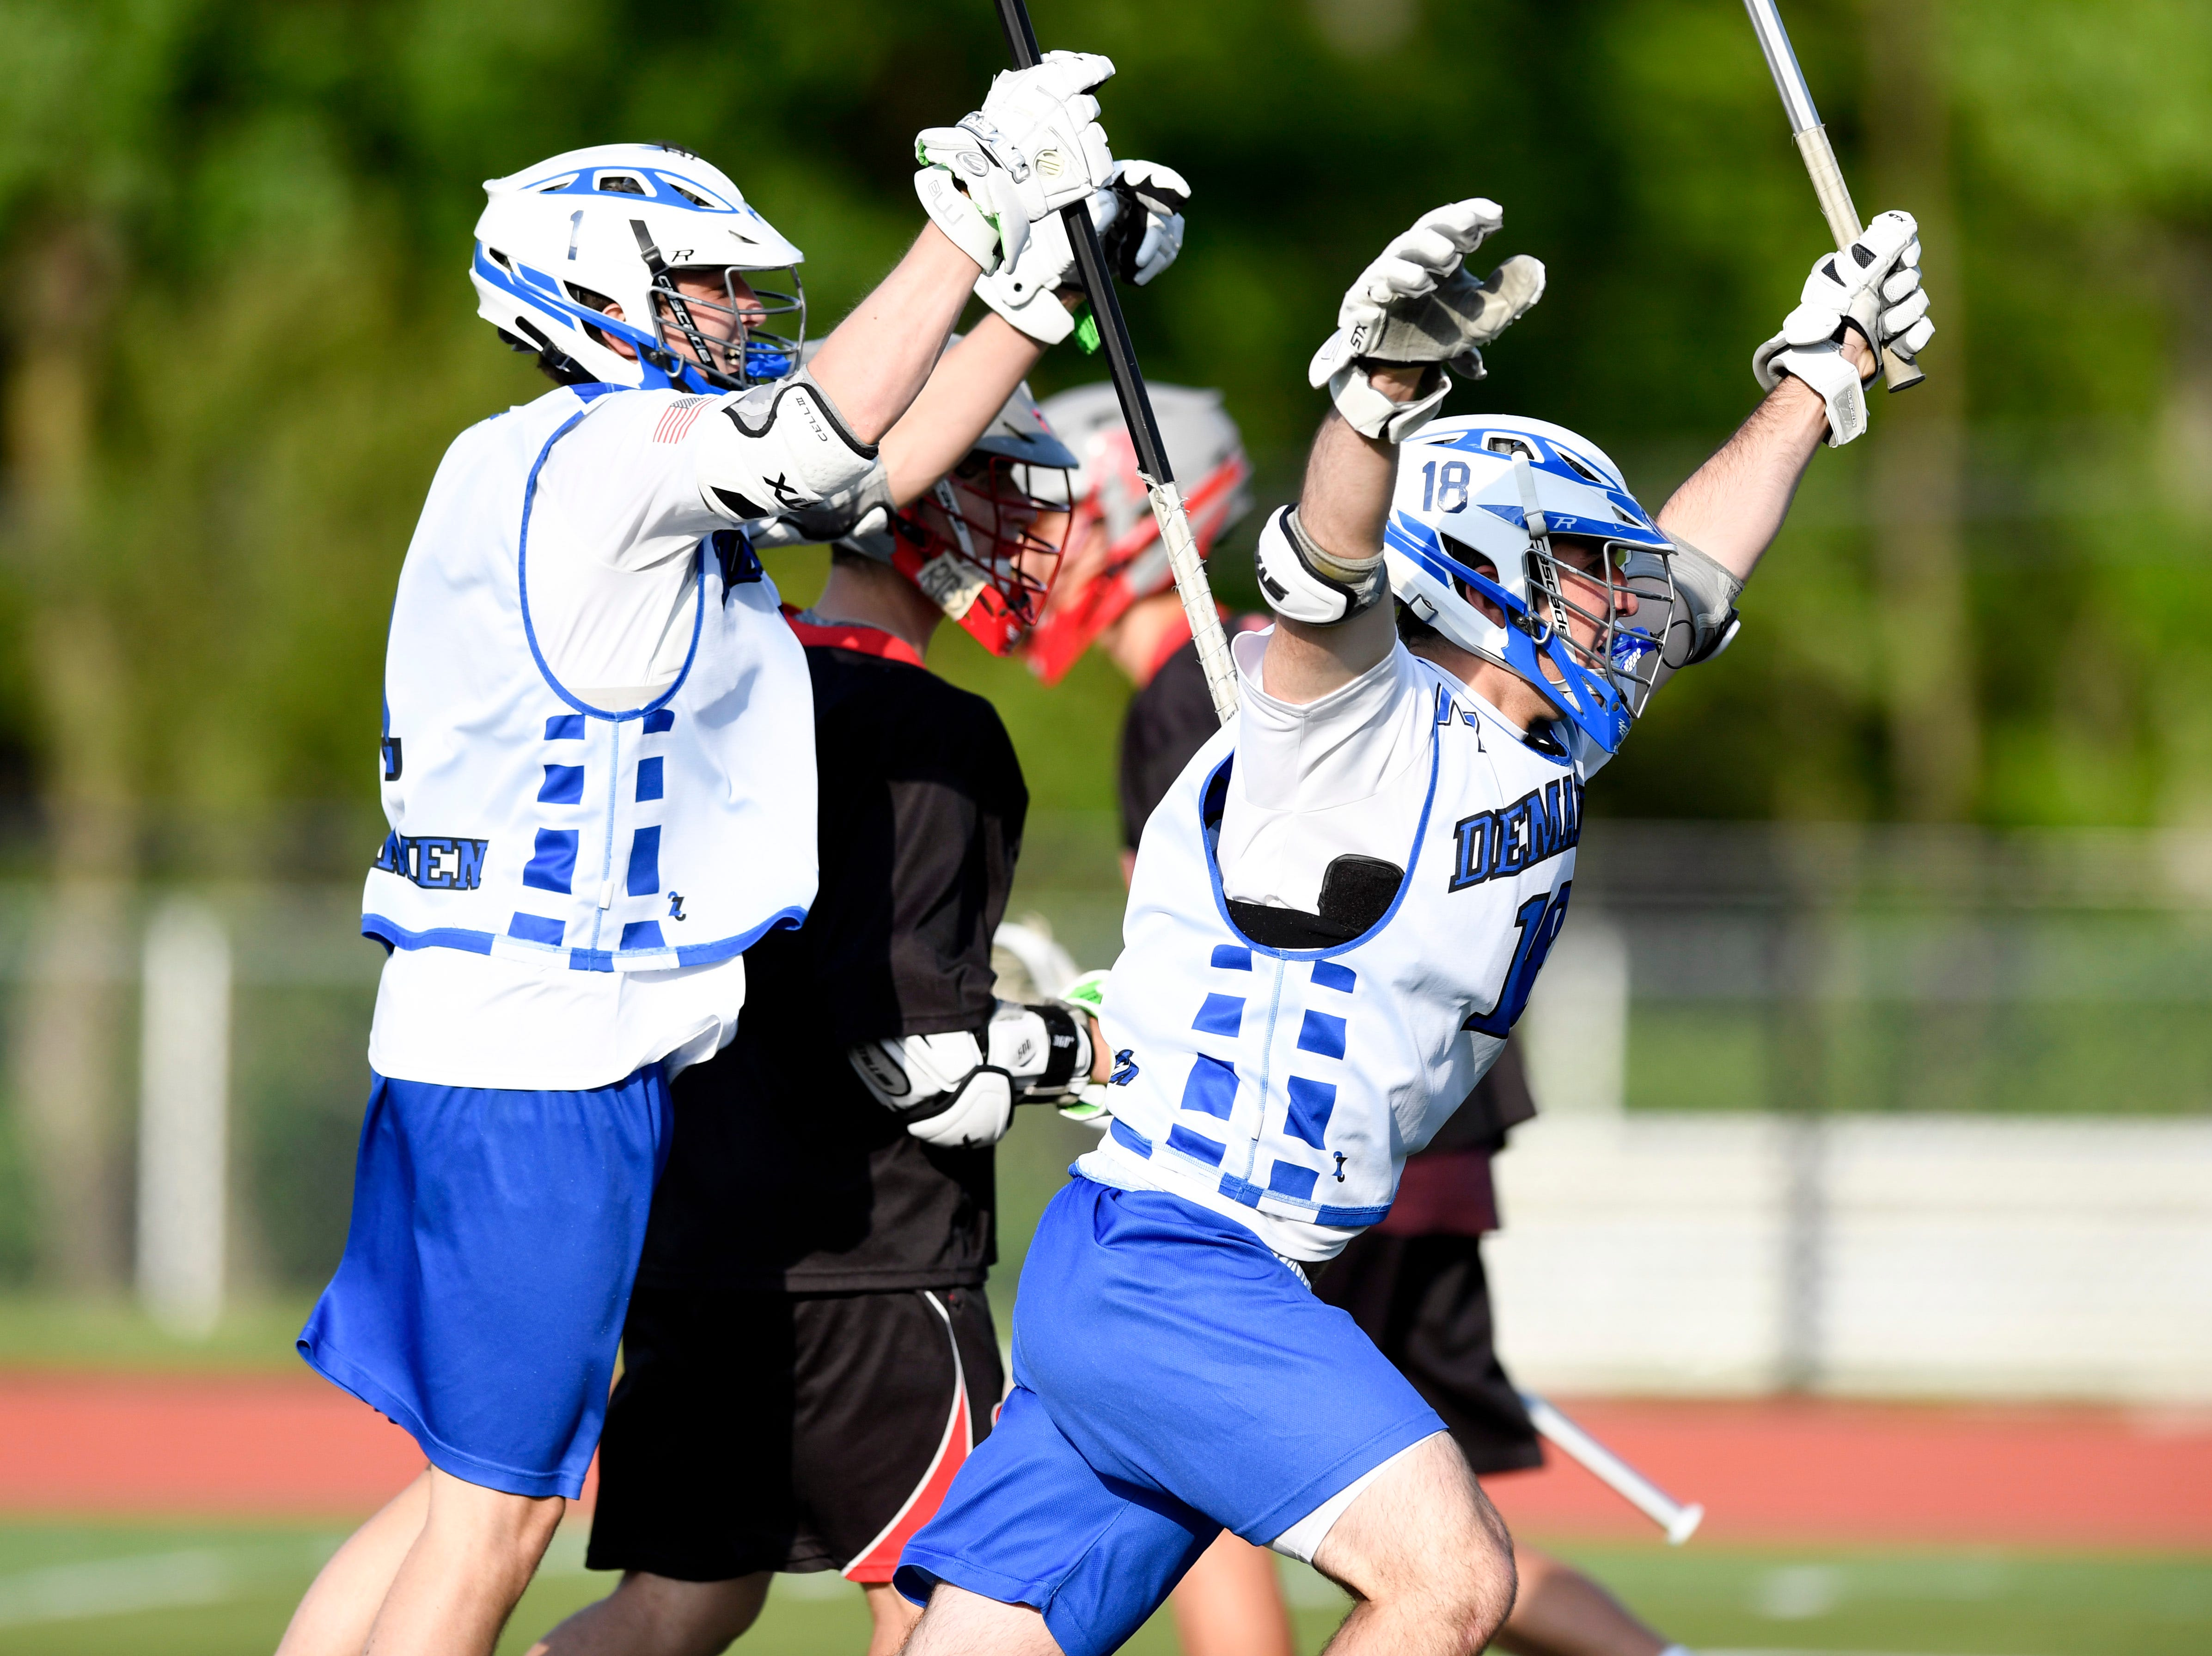 Demarest's Michael Teperman, left, and Robert Kollender celebrate their 6-3 win over Lakeland in the first round of the North Group 2 boys lacrosse tournament on Wednesday, May 15, 2019 in Demarest, NJ.